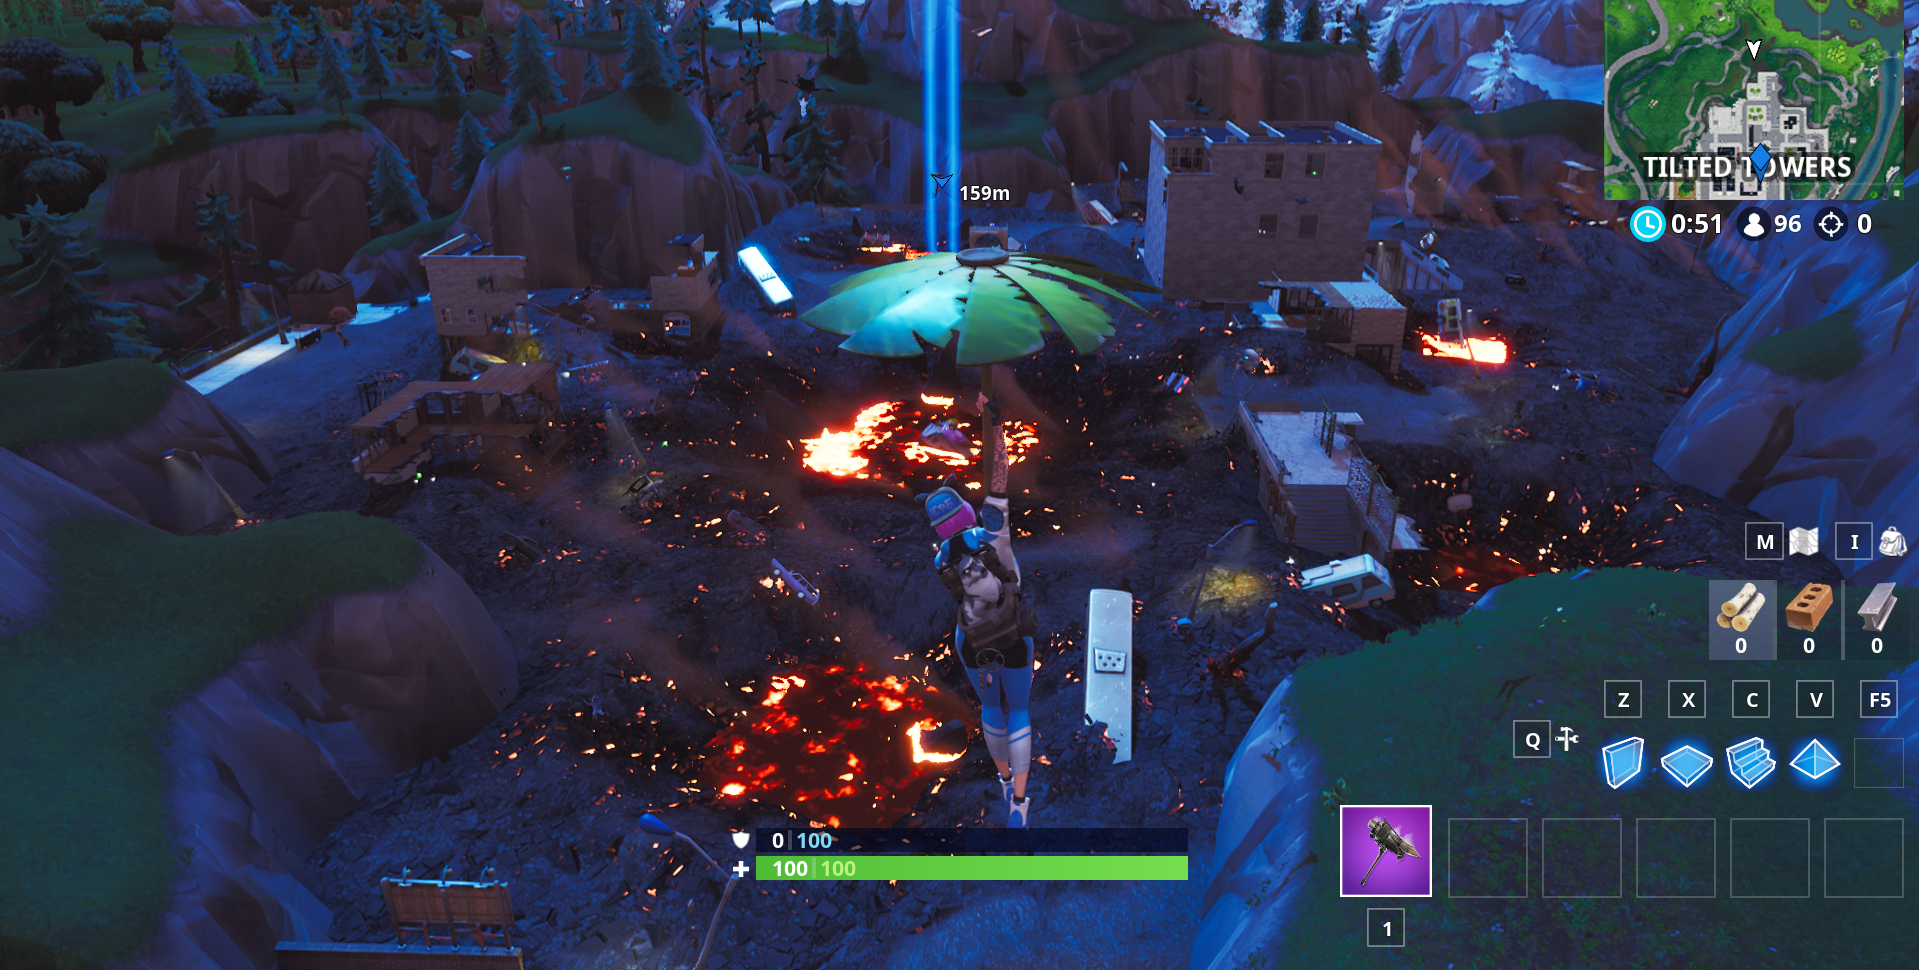 Fortnite's Vault Opens, Volcano Destroys Tilted Towers